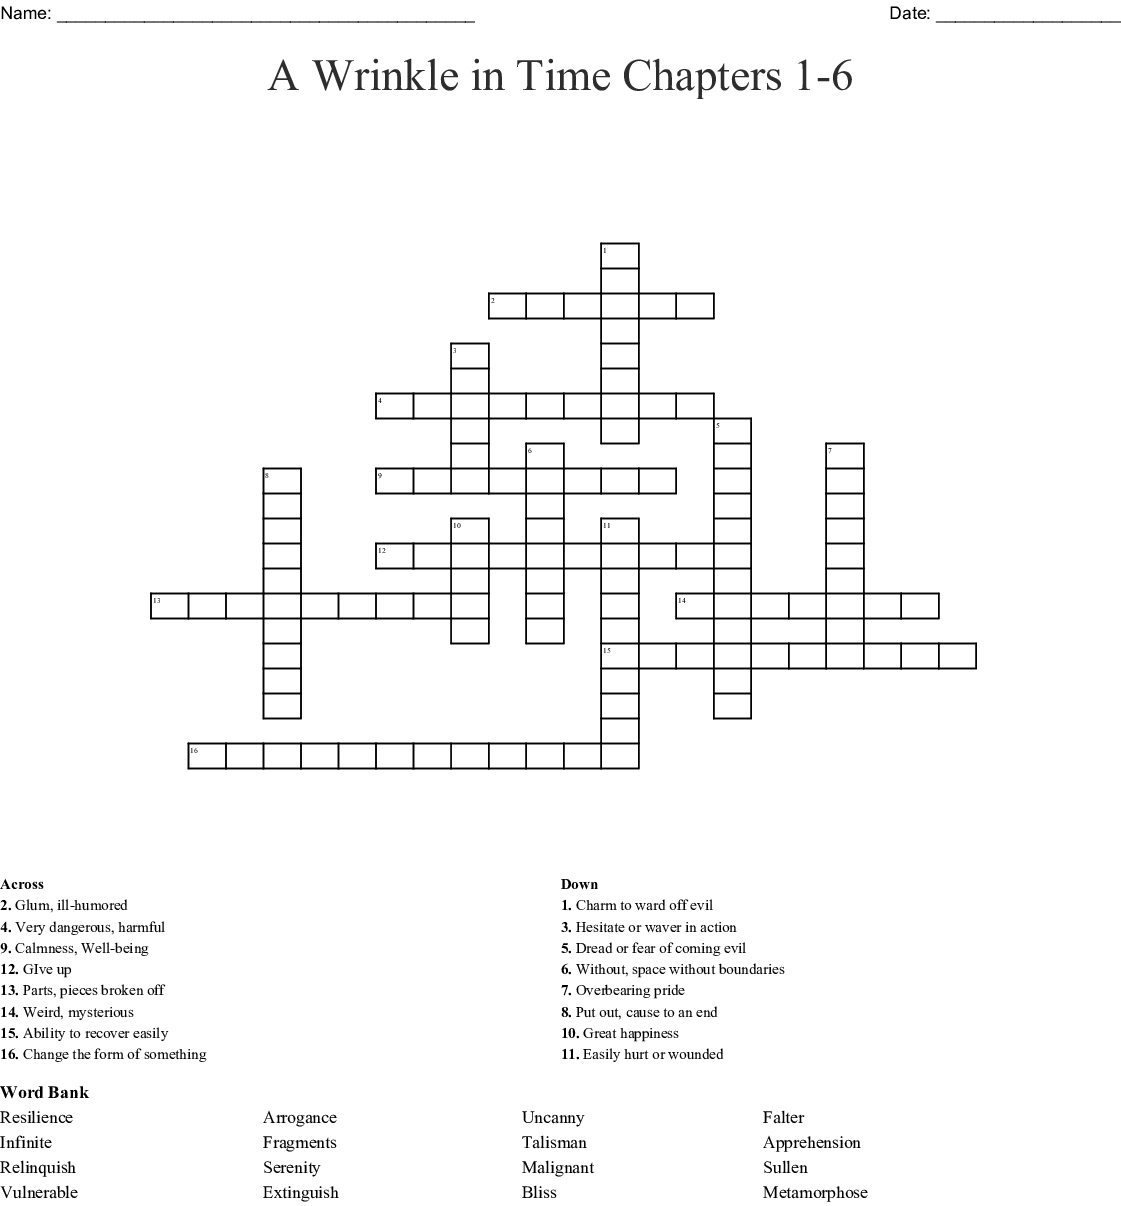 A Wrinkle in Time Chapters 1-6 Crossword - WordMint